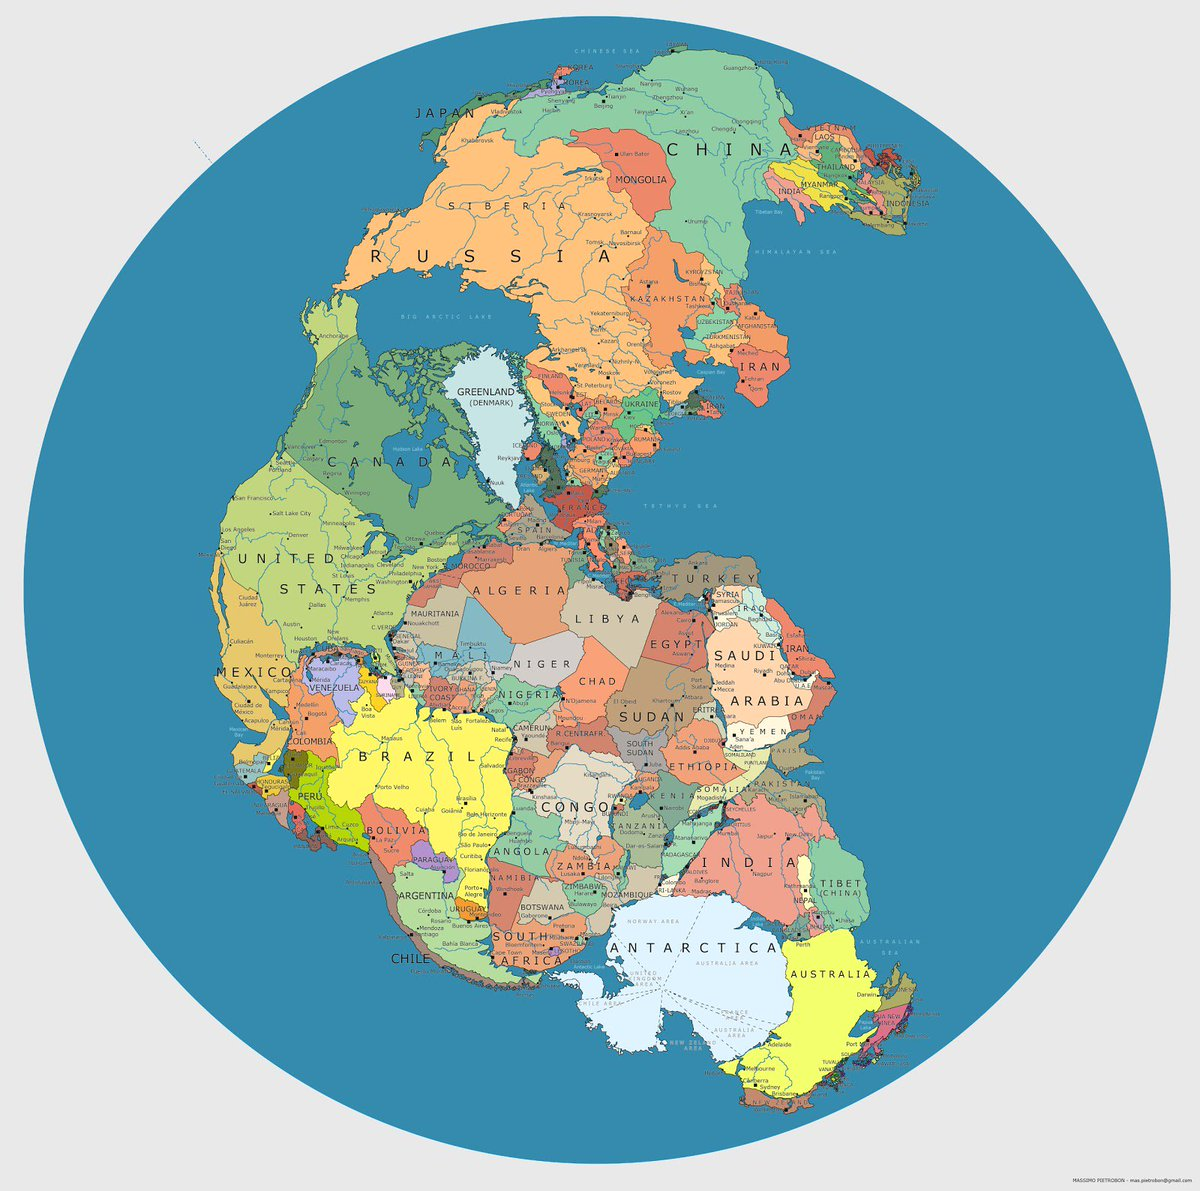 Simon wardley on twitter its just the competitive landscape both can be mapped by using anchor position and movement and both landscapes change over time eg a map of the world gumiabroncs Images